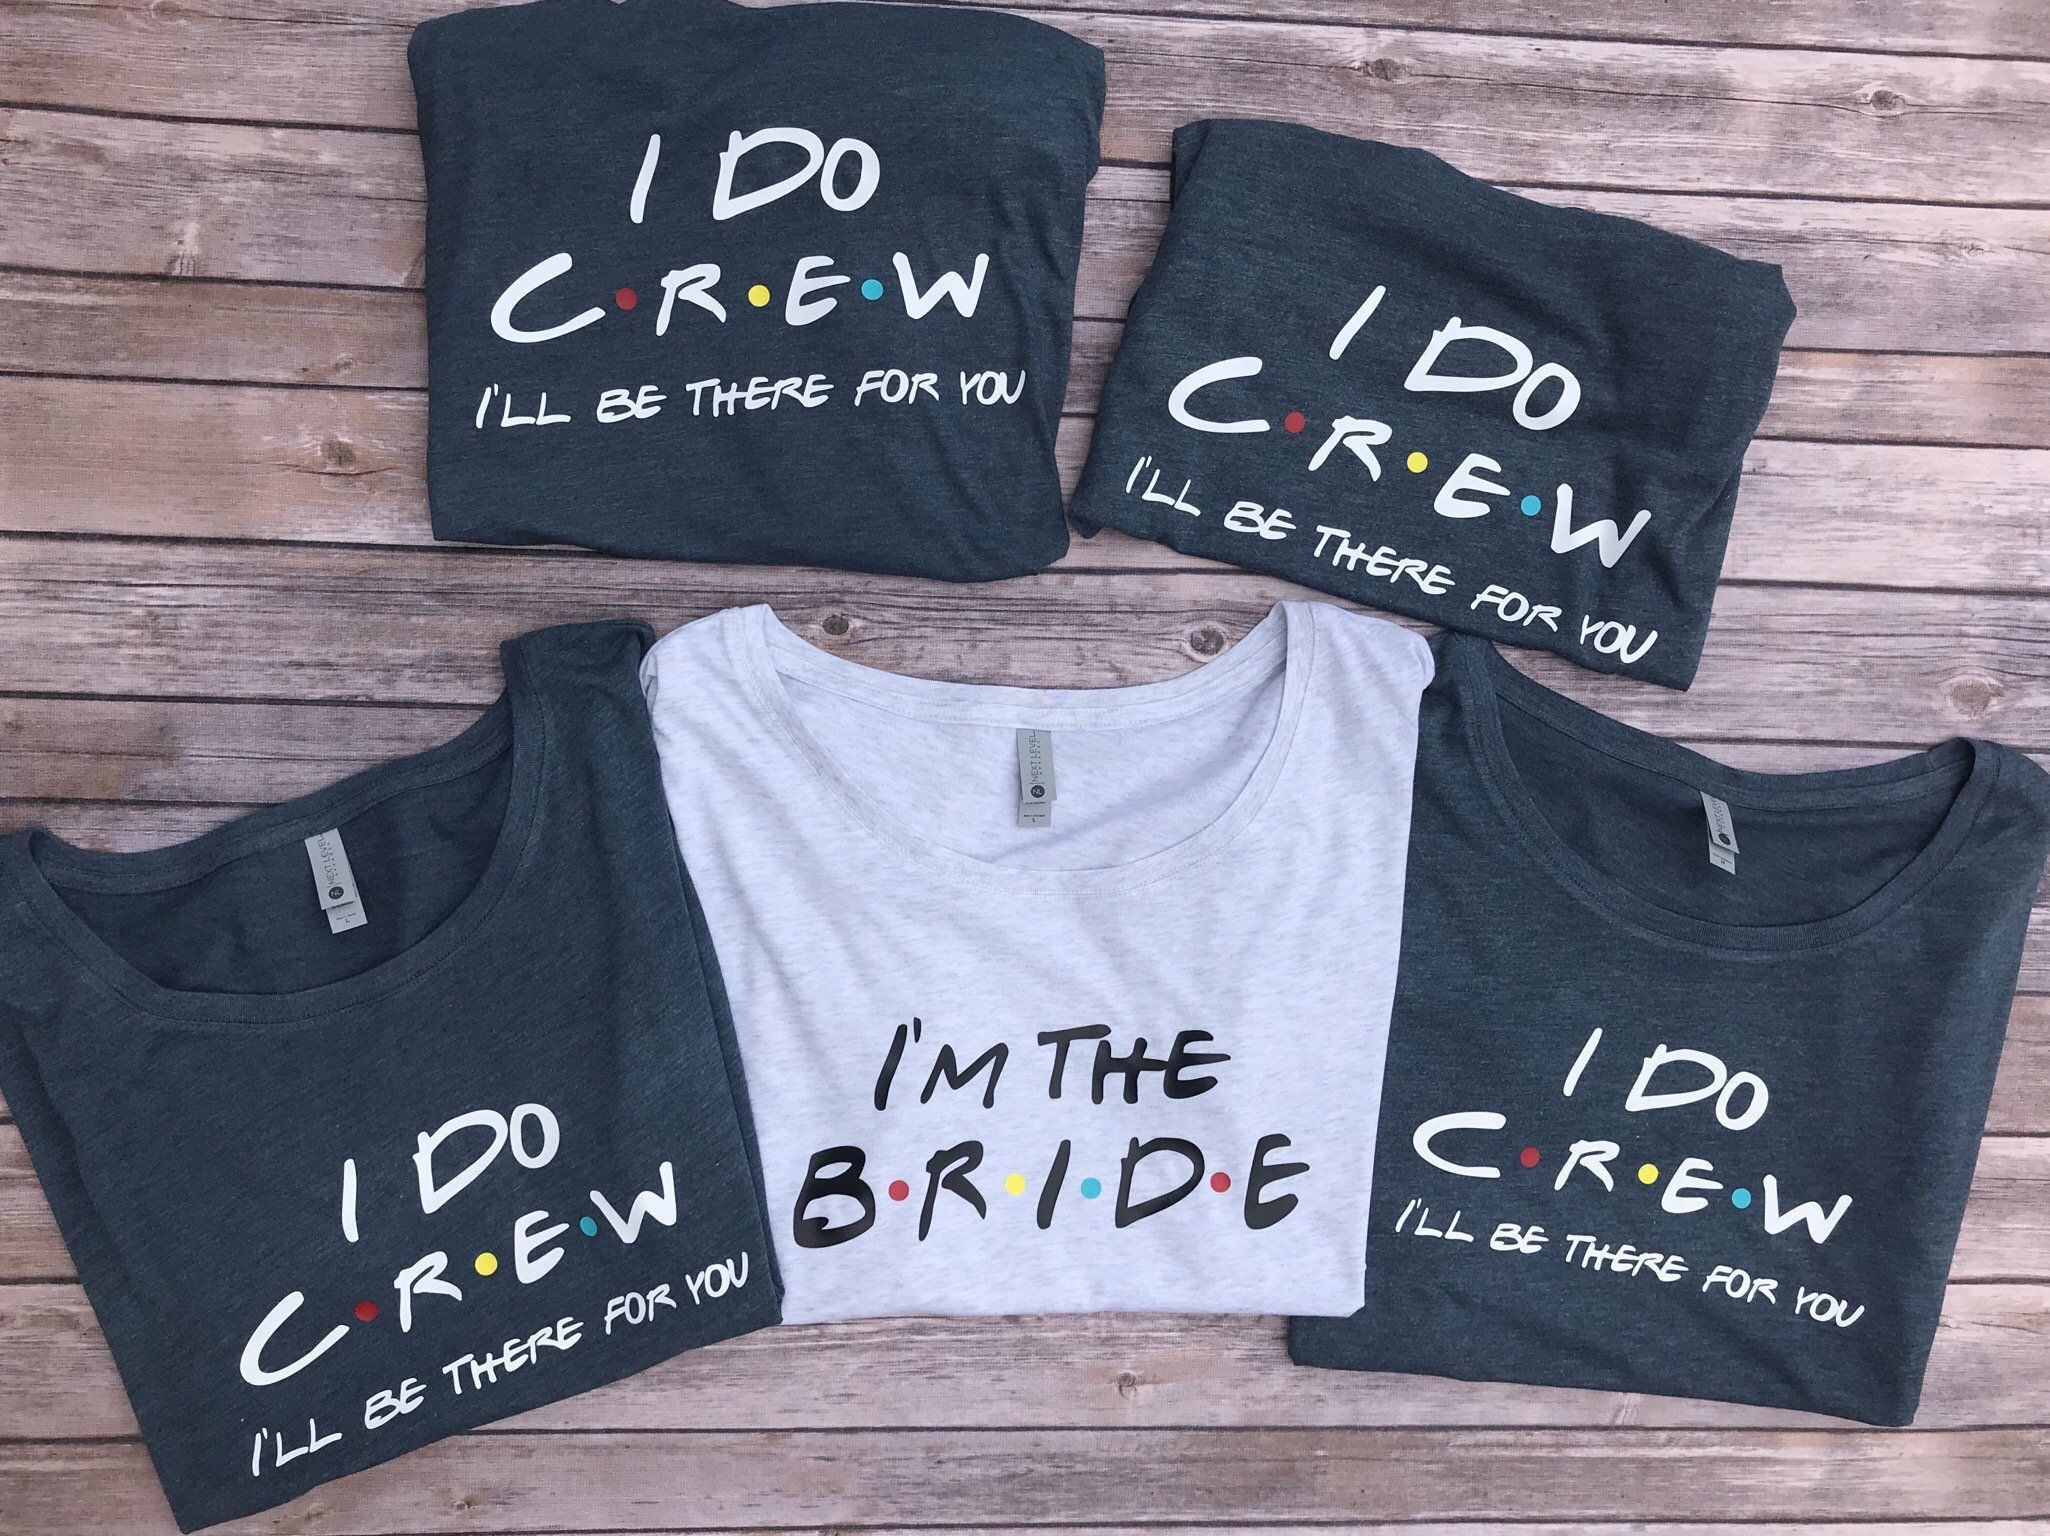 Groom T Shirt Bachelor Party Gifts For Groomsmen Shirts Funny Etsy In 2020 Bachelor Party Gifts Bachelor Party Shirts Bachelor Shirt